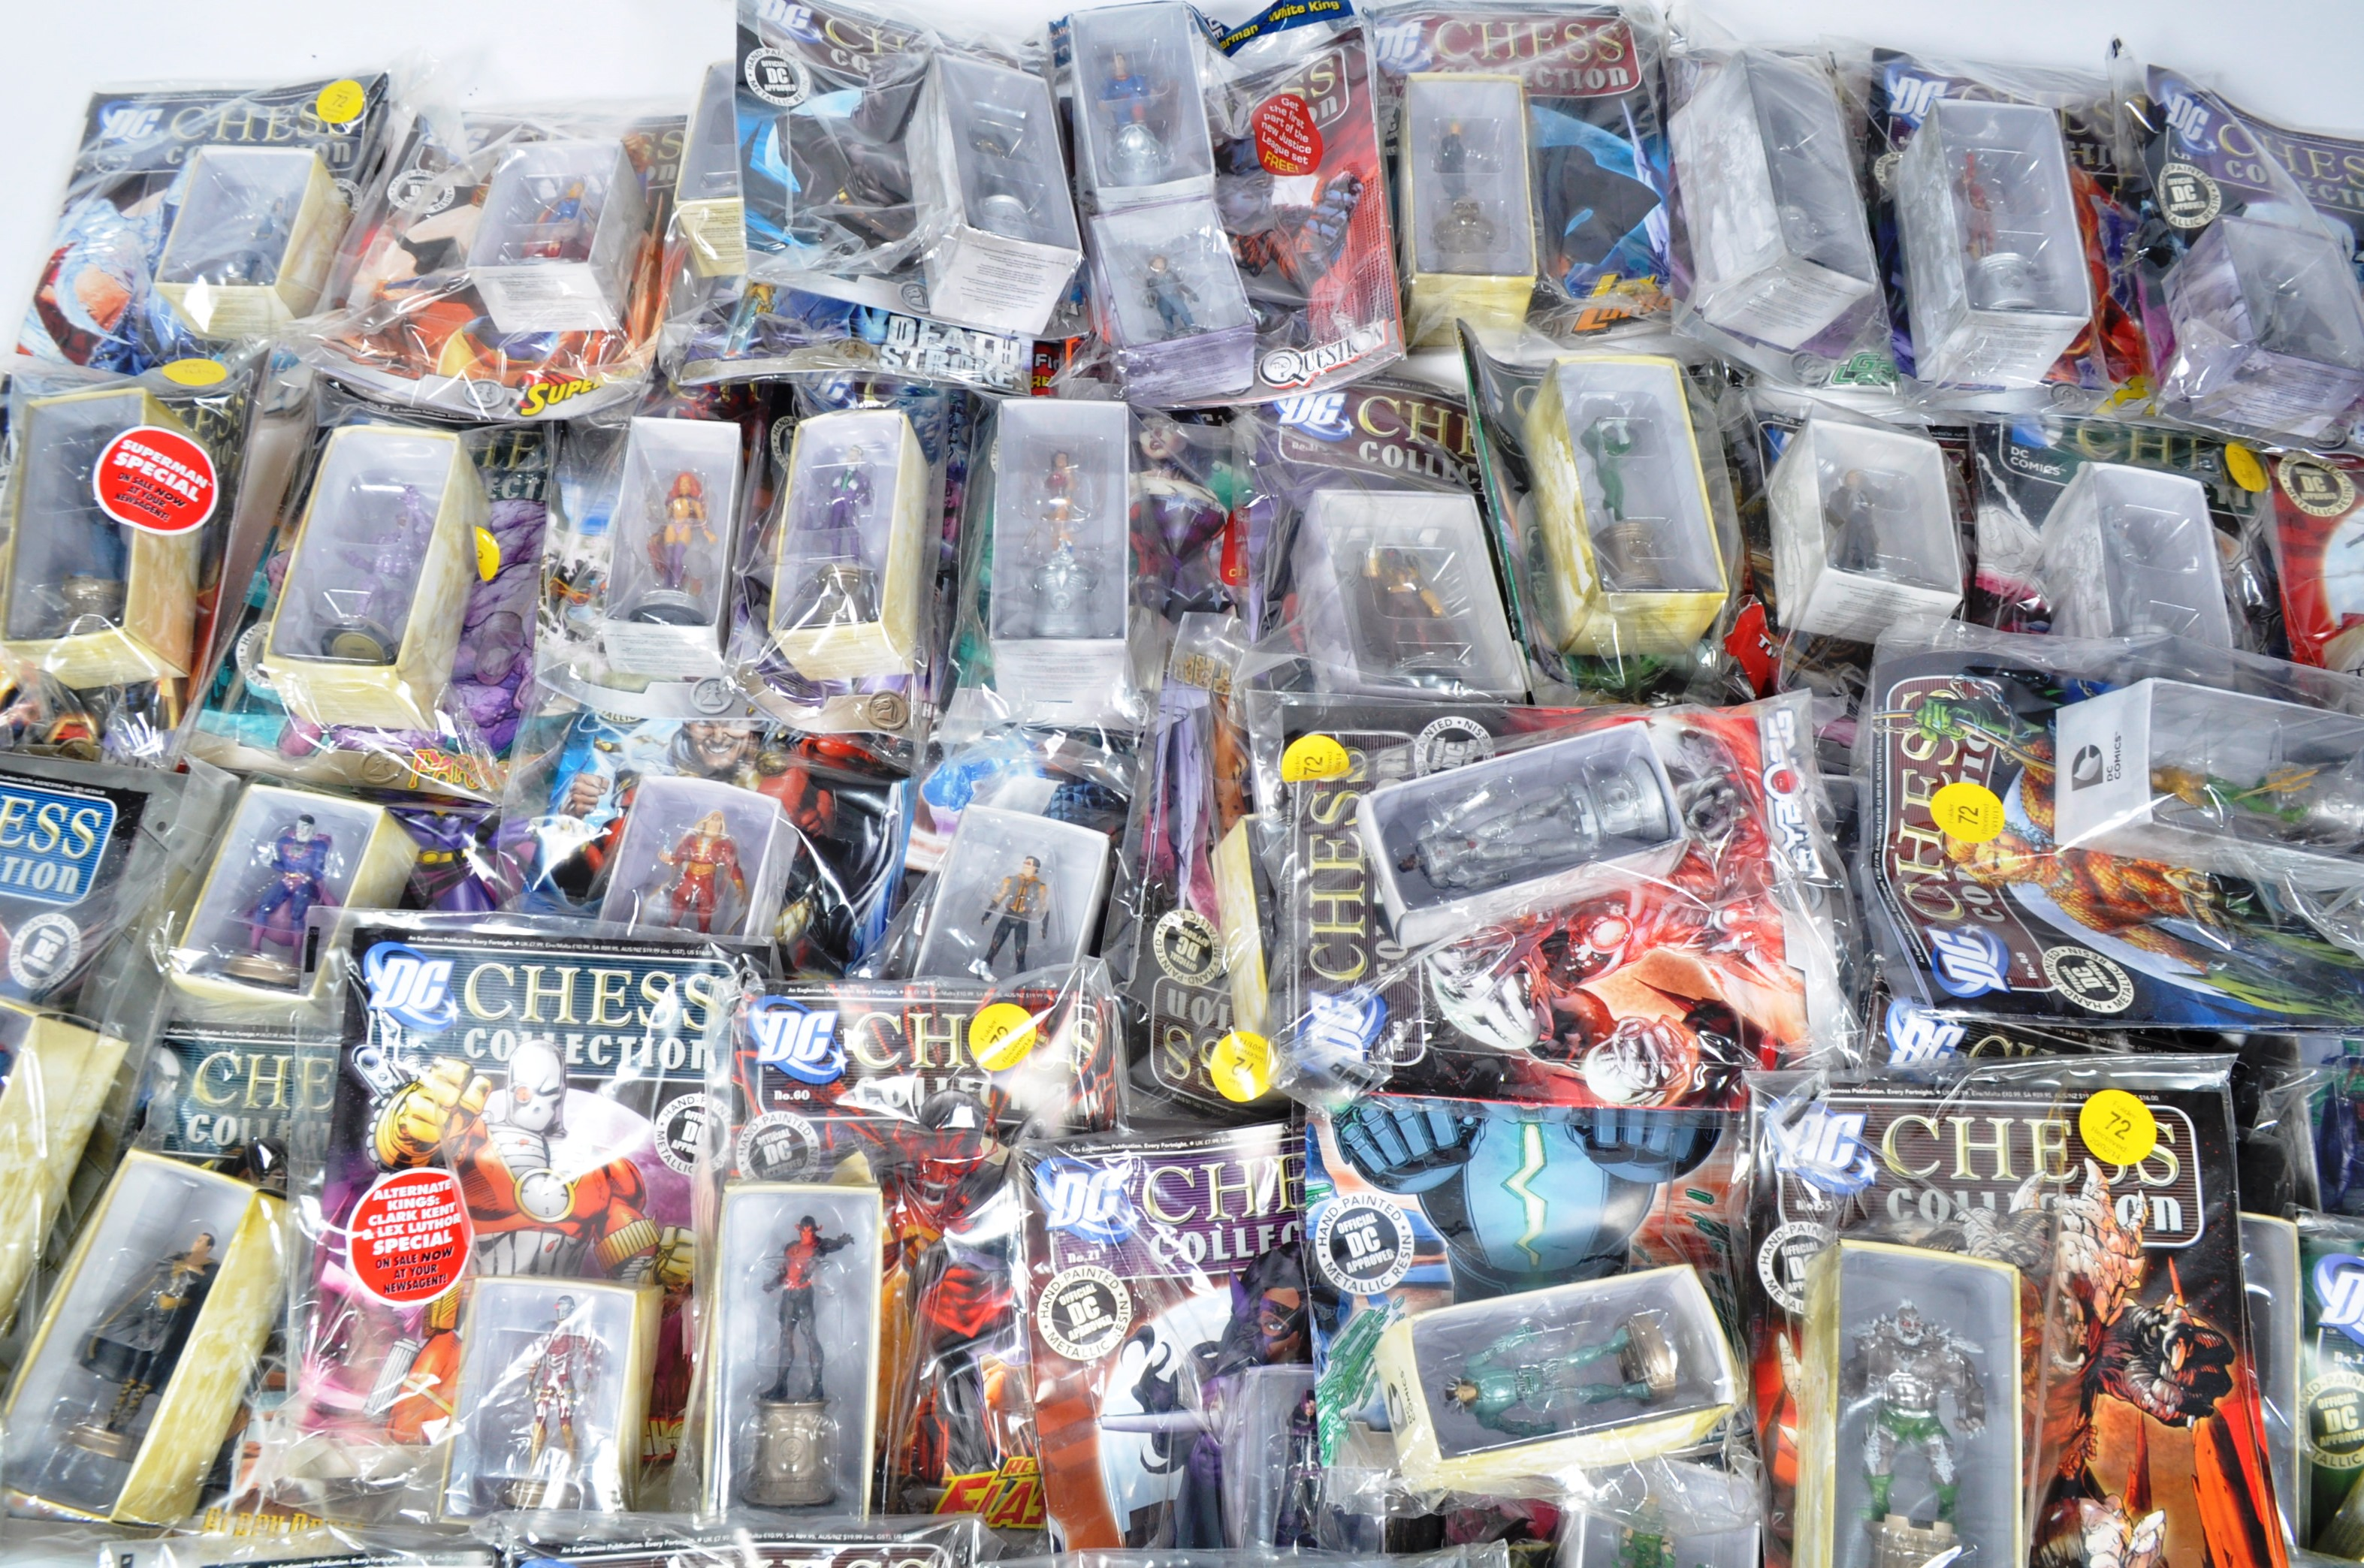 LARGE COLLECTION OF ASSORTED DC COMICS COLLECTIBLE CHESS PIECES - Image 6 of 6